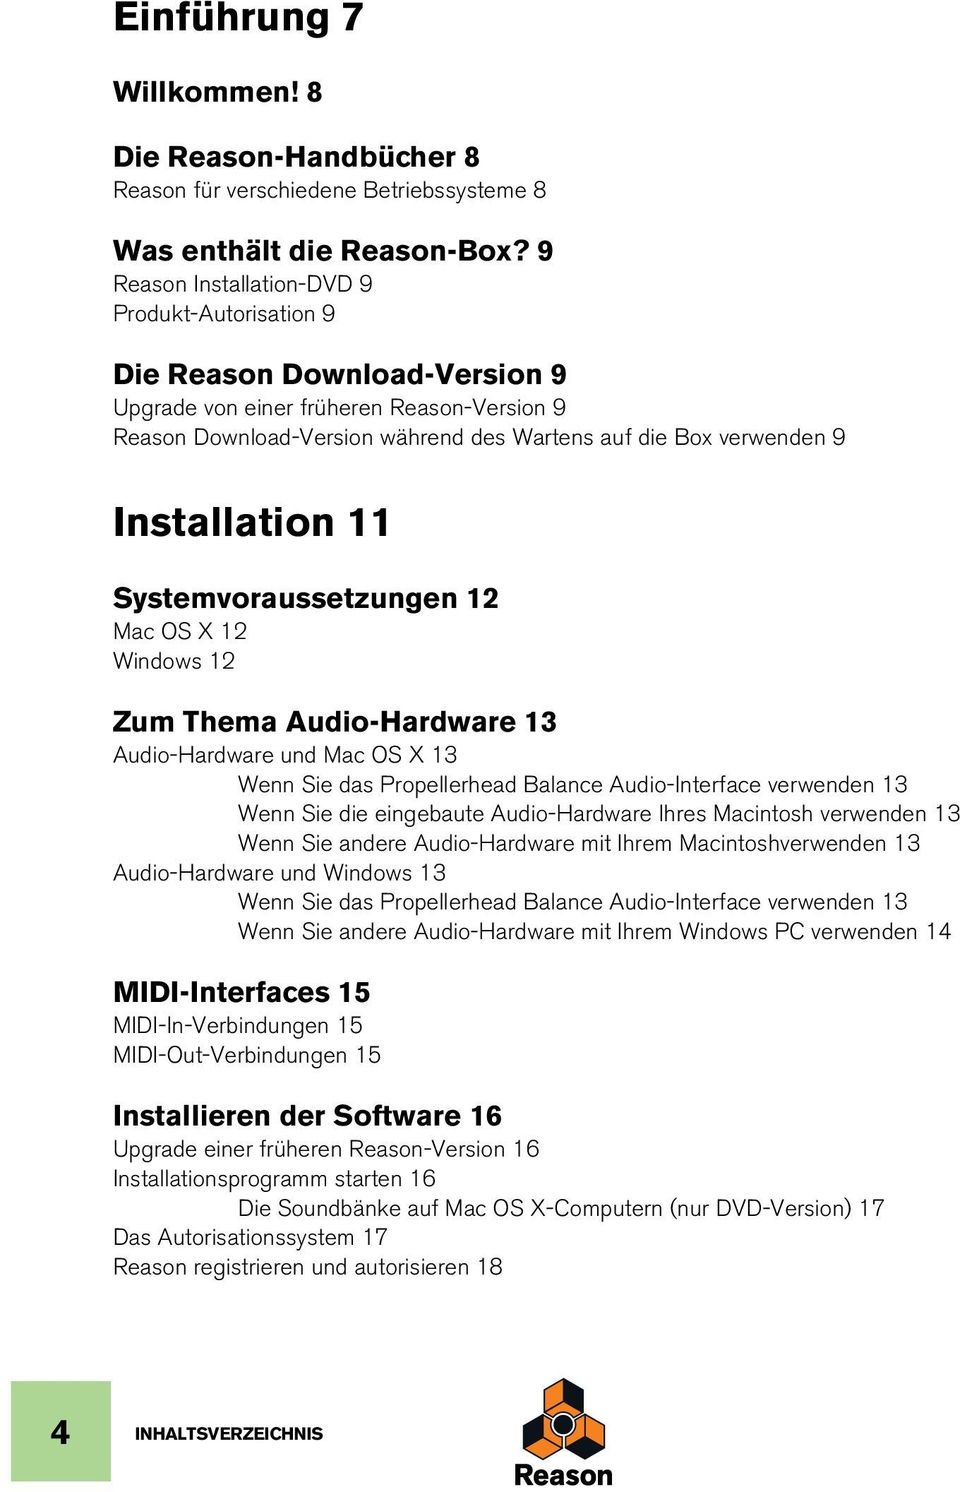 Installation 11 Systemvoraussetzungen 12 Mac OS X 12 Windows 12 Zum Thema Audio-Hardware 13 Audio-Hardware und Mac OS X 13 Wenn Sie das Propellerhead Balance Audio-Interface verwenden 13 Wenn Sie die